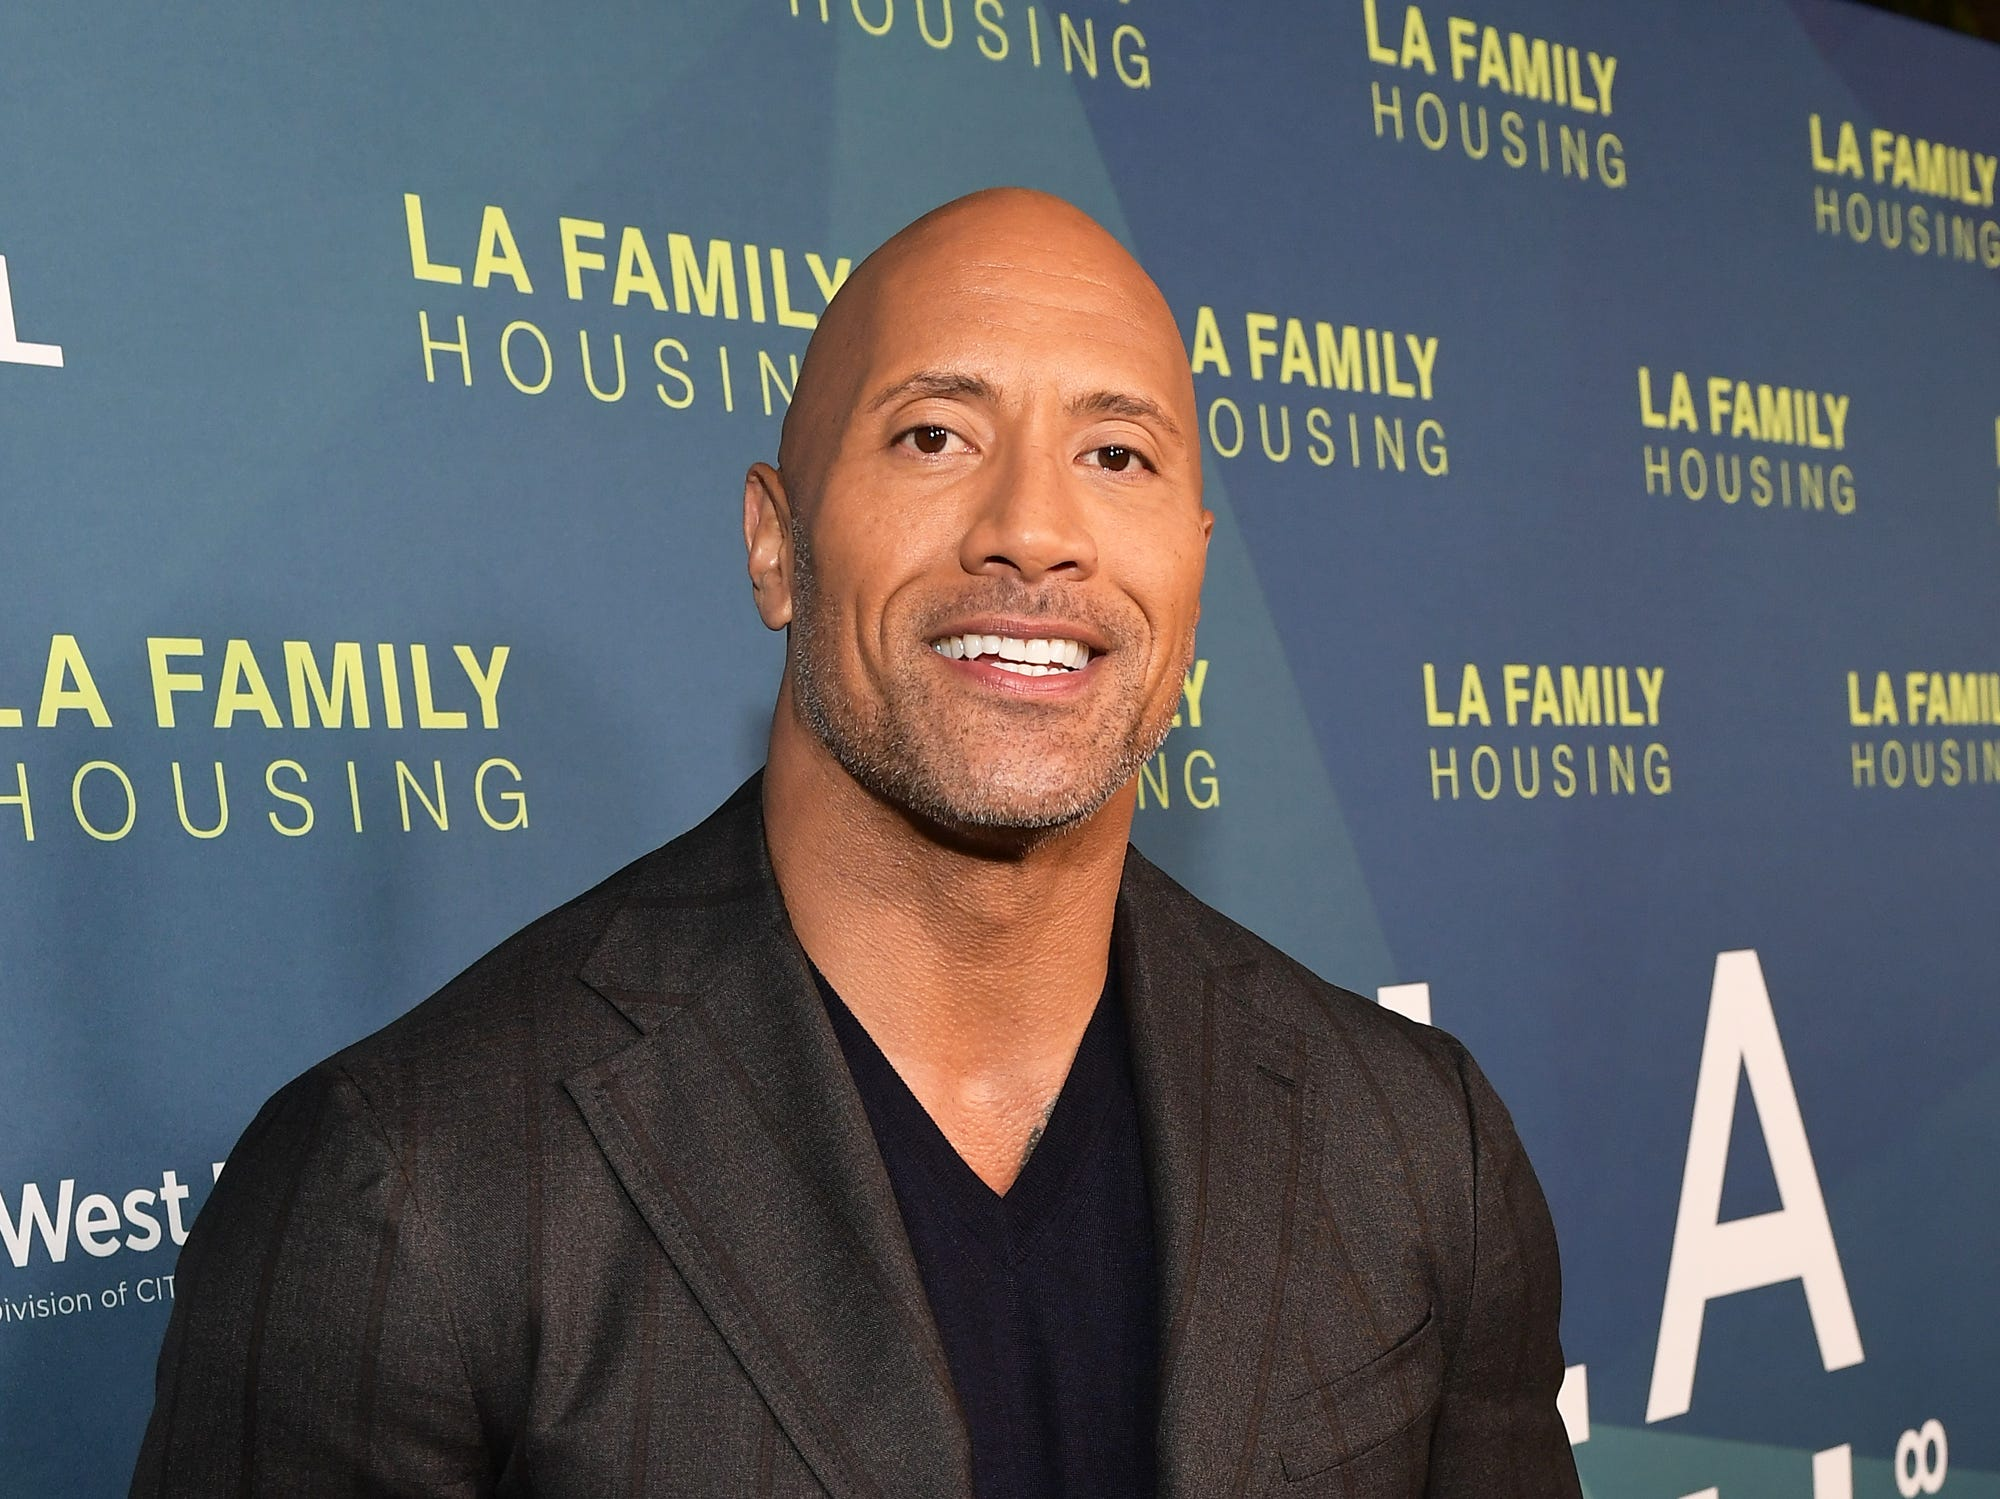 WEST HOLLYWOOD, CA - APRIL 05:  Dwayne Johnson attends the 2018 LA Family Housing Awards at The Lot in West Hollywood on April 5, 2018 in West Hollywood, California.  (Photo by Matt Winkelmeyer/Getty Images) ORG XMIT: 775149547 ORIG FILE ID: 942497064